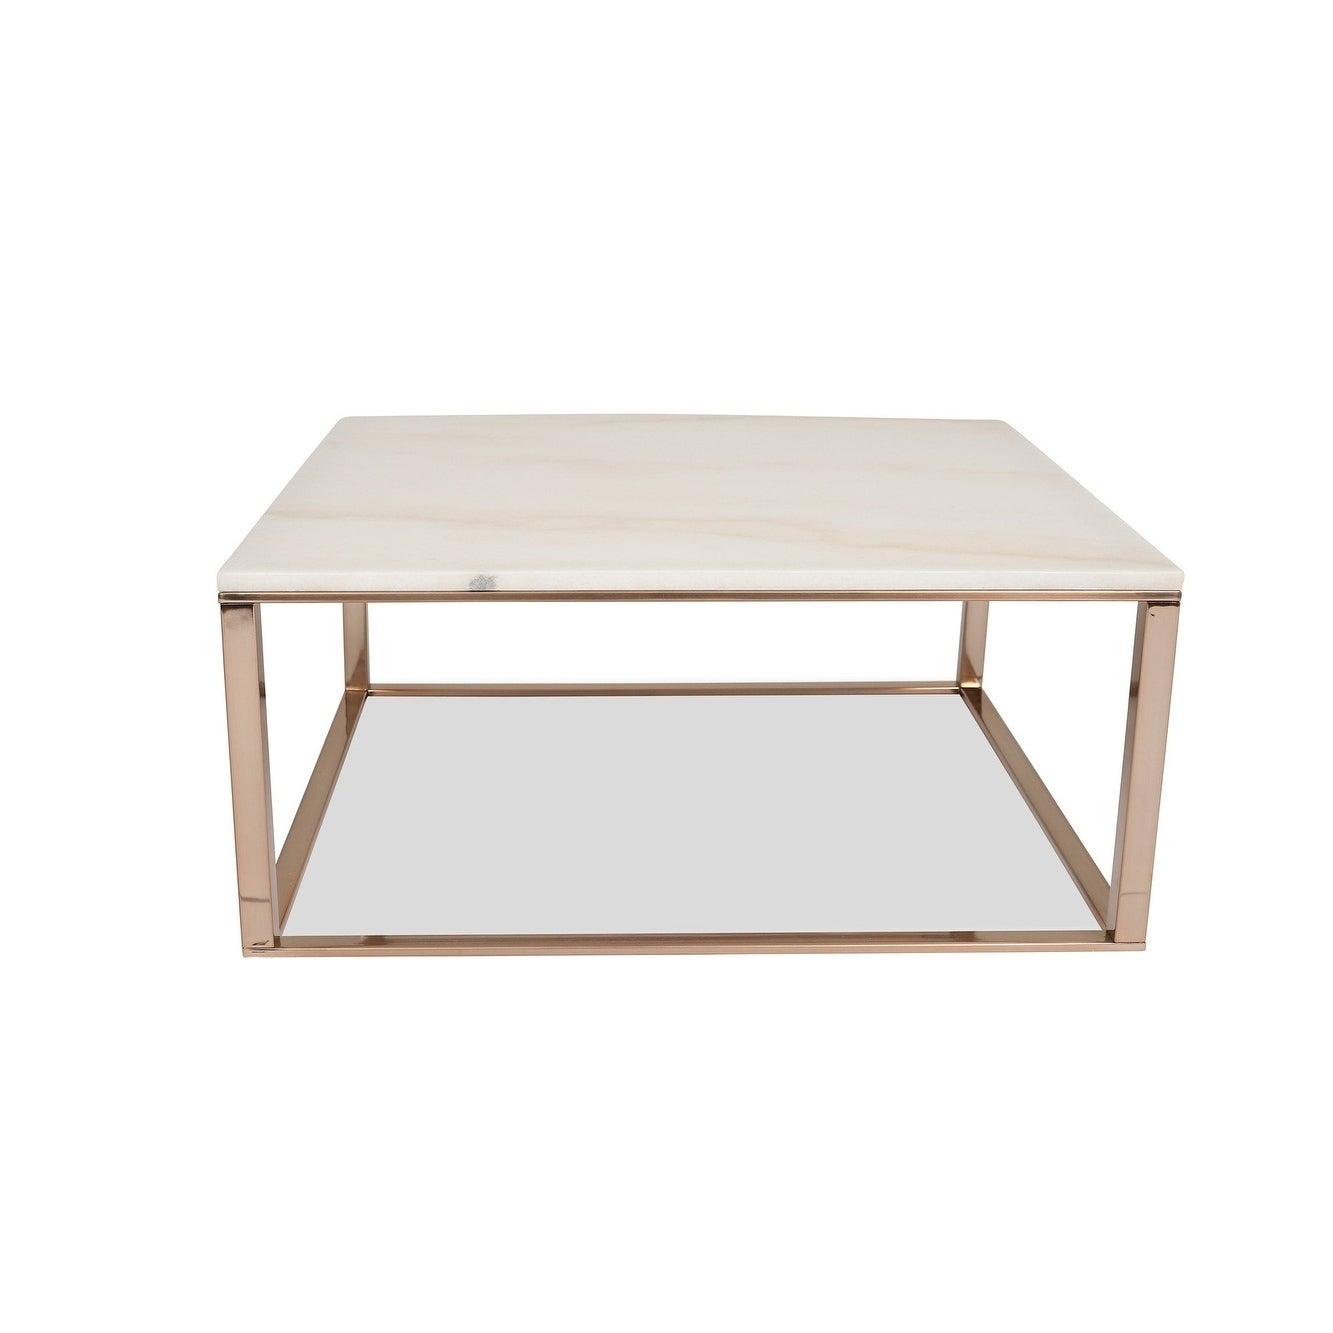 Helena White Marble Coffee Table Modern Rose Gold Coffee Tables For Living Room Square Overstock 21485038